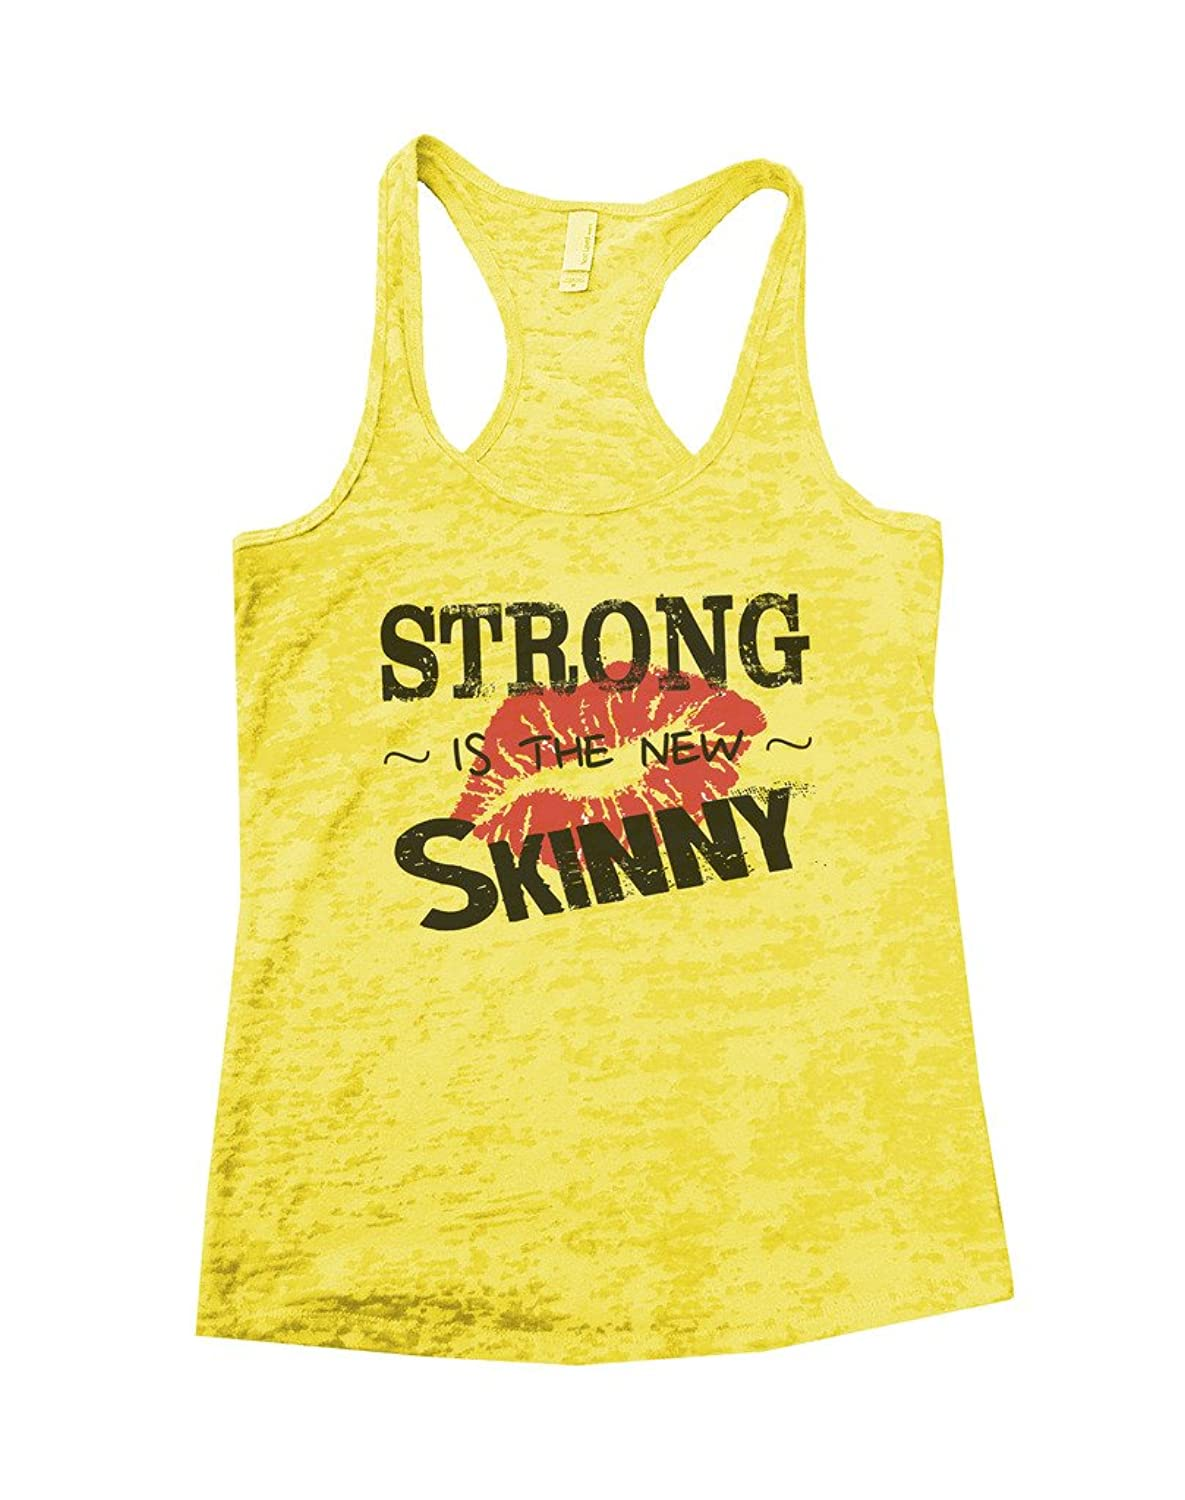 Strong Is The New Skinny Lips Burnout Workout Gym Shirt Fitness Tank Funny Threadz